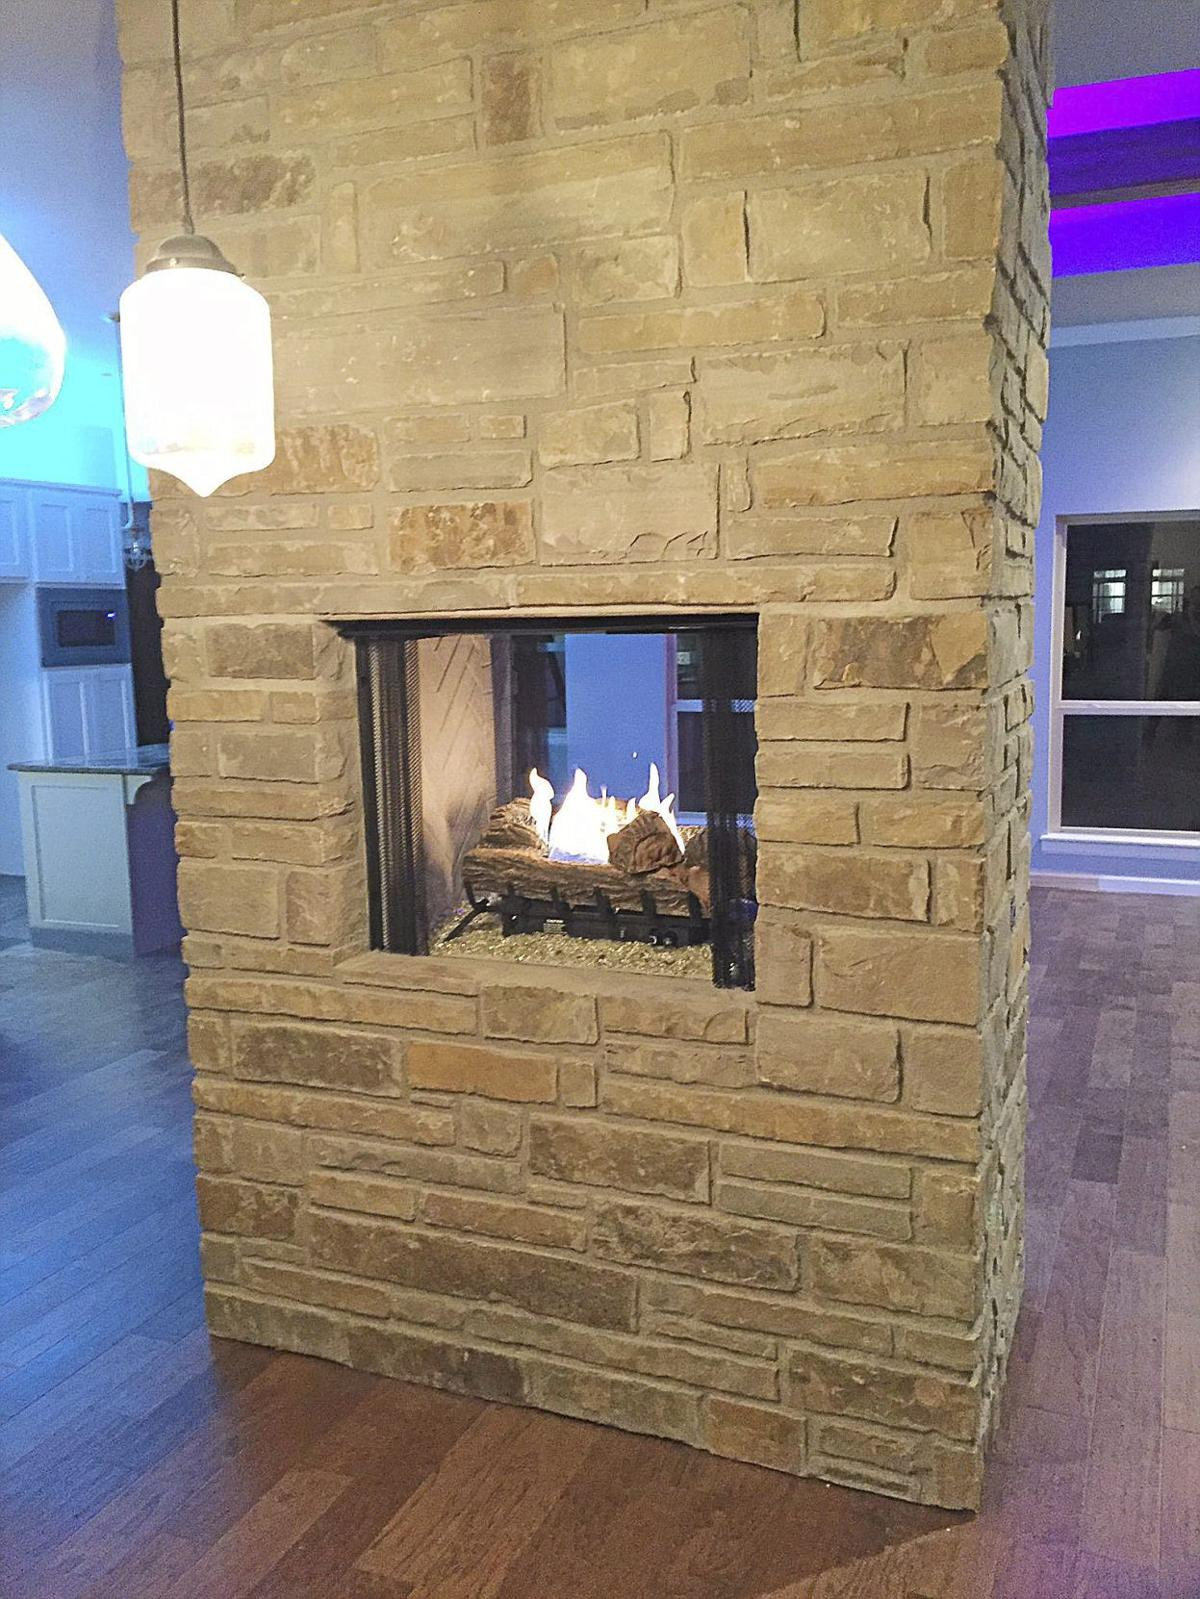 quality homes with a personal touch news tulsaworld com